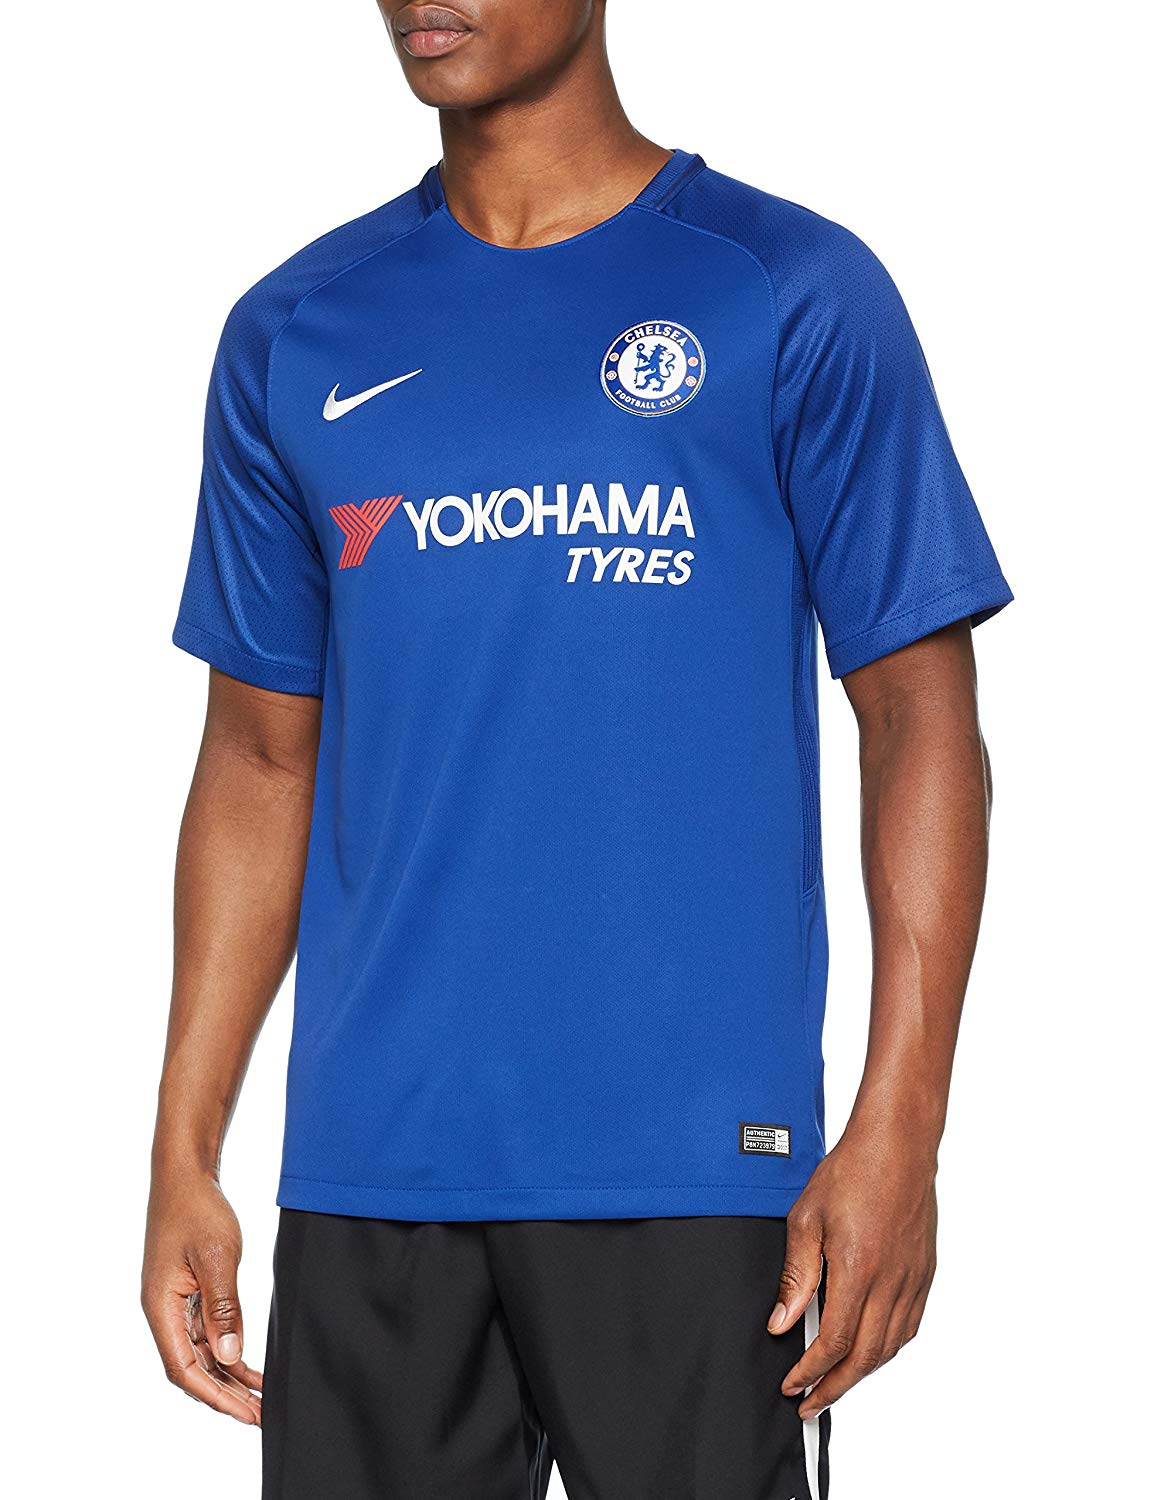 Mens Nike Chelsea Home Shirt       905513-496*